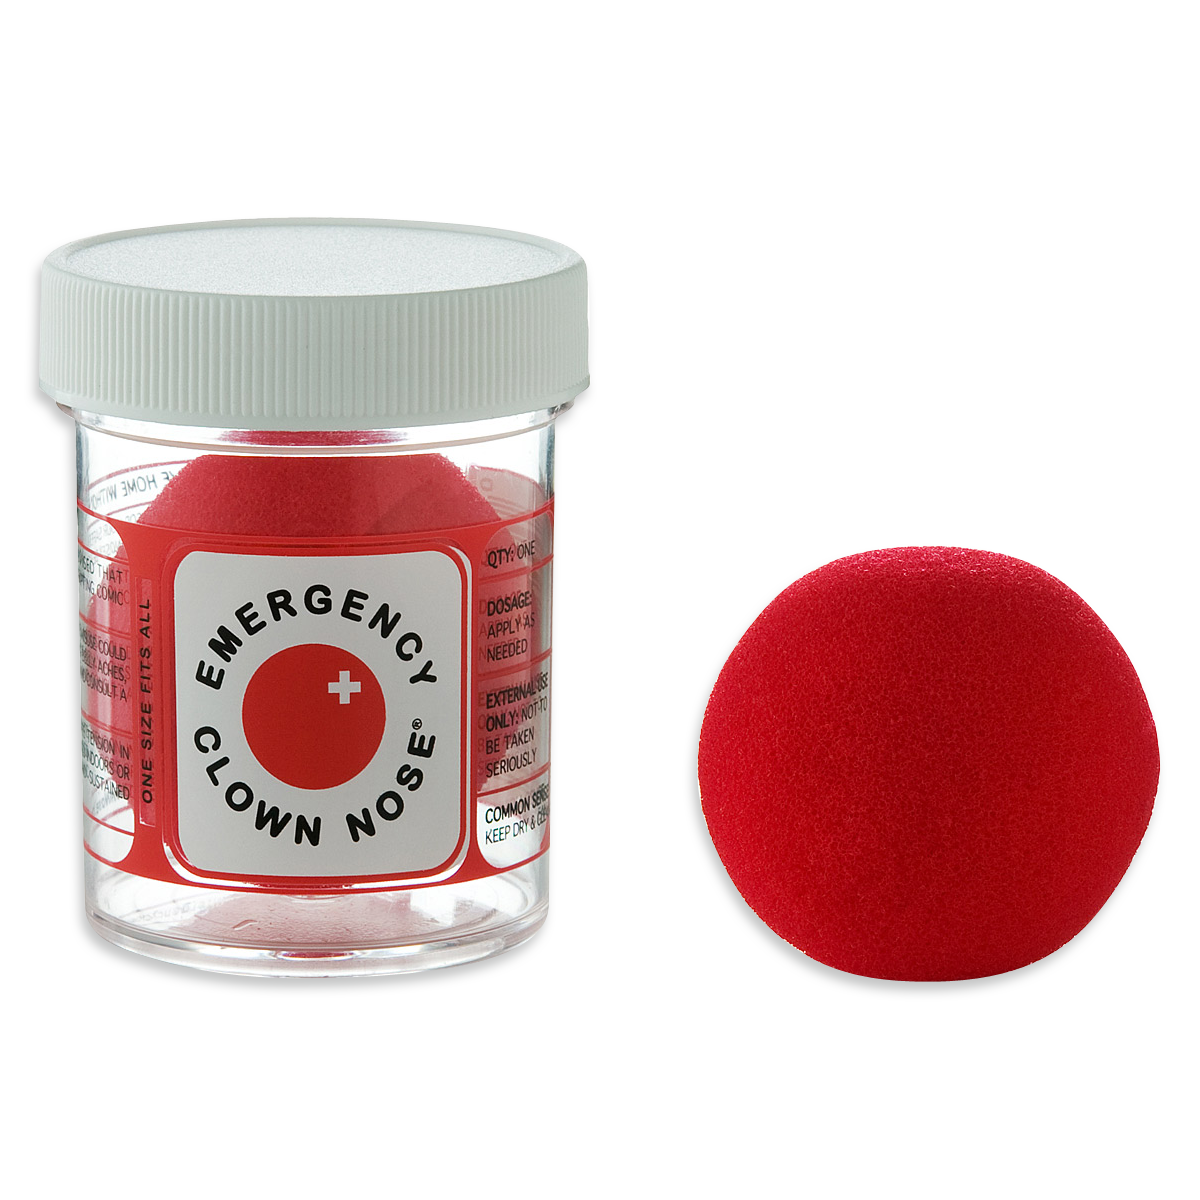 Red clown nose png. Emergency gessato